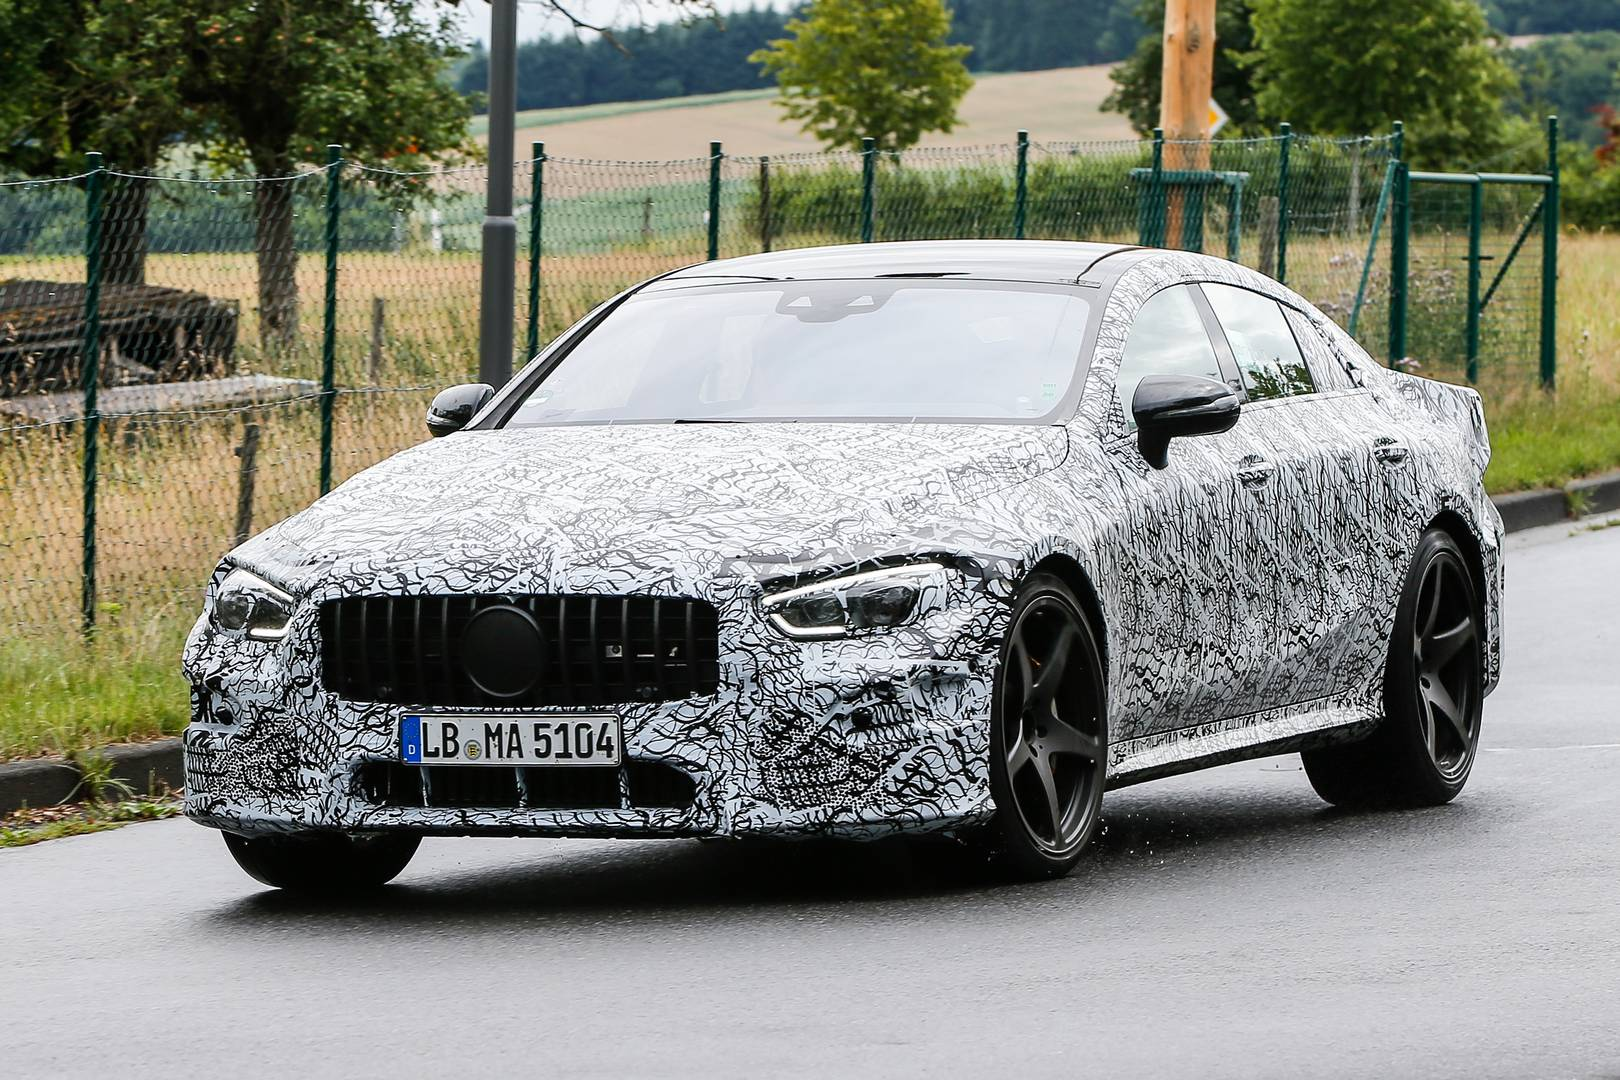 Mercedes amg gt 4 door latest spy shots gtspirit for Mercedes benz 4 door